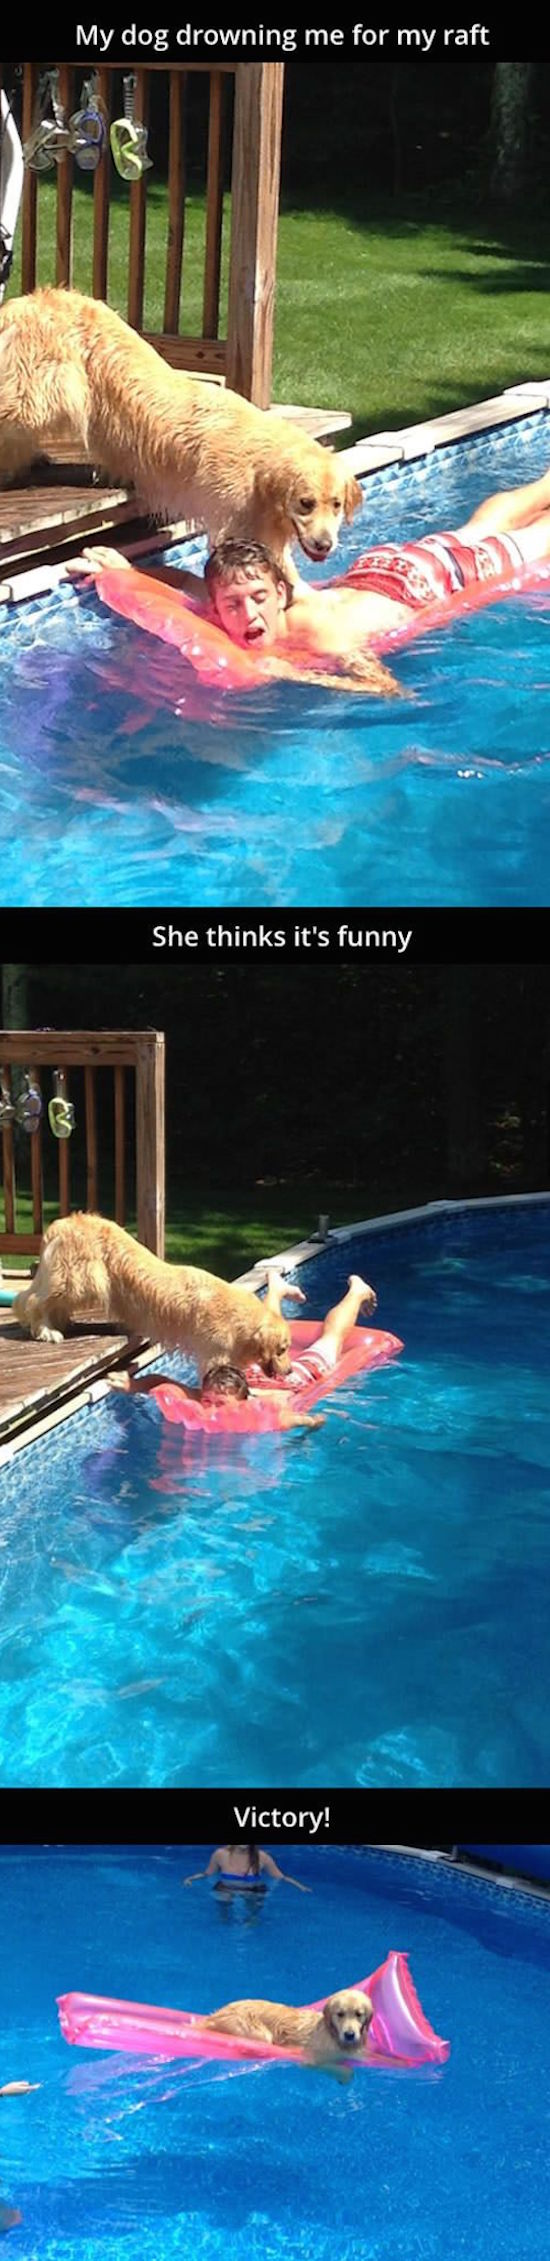 funny photo of dog knocking guy off raft in pool